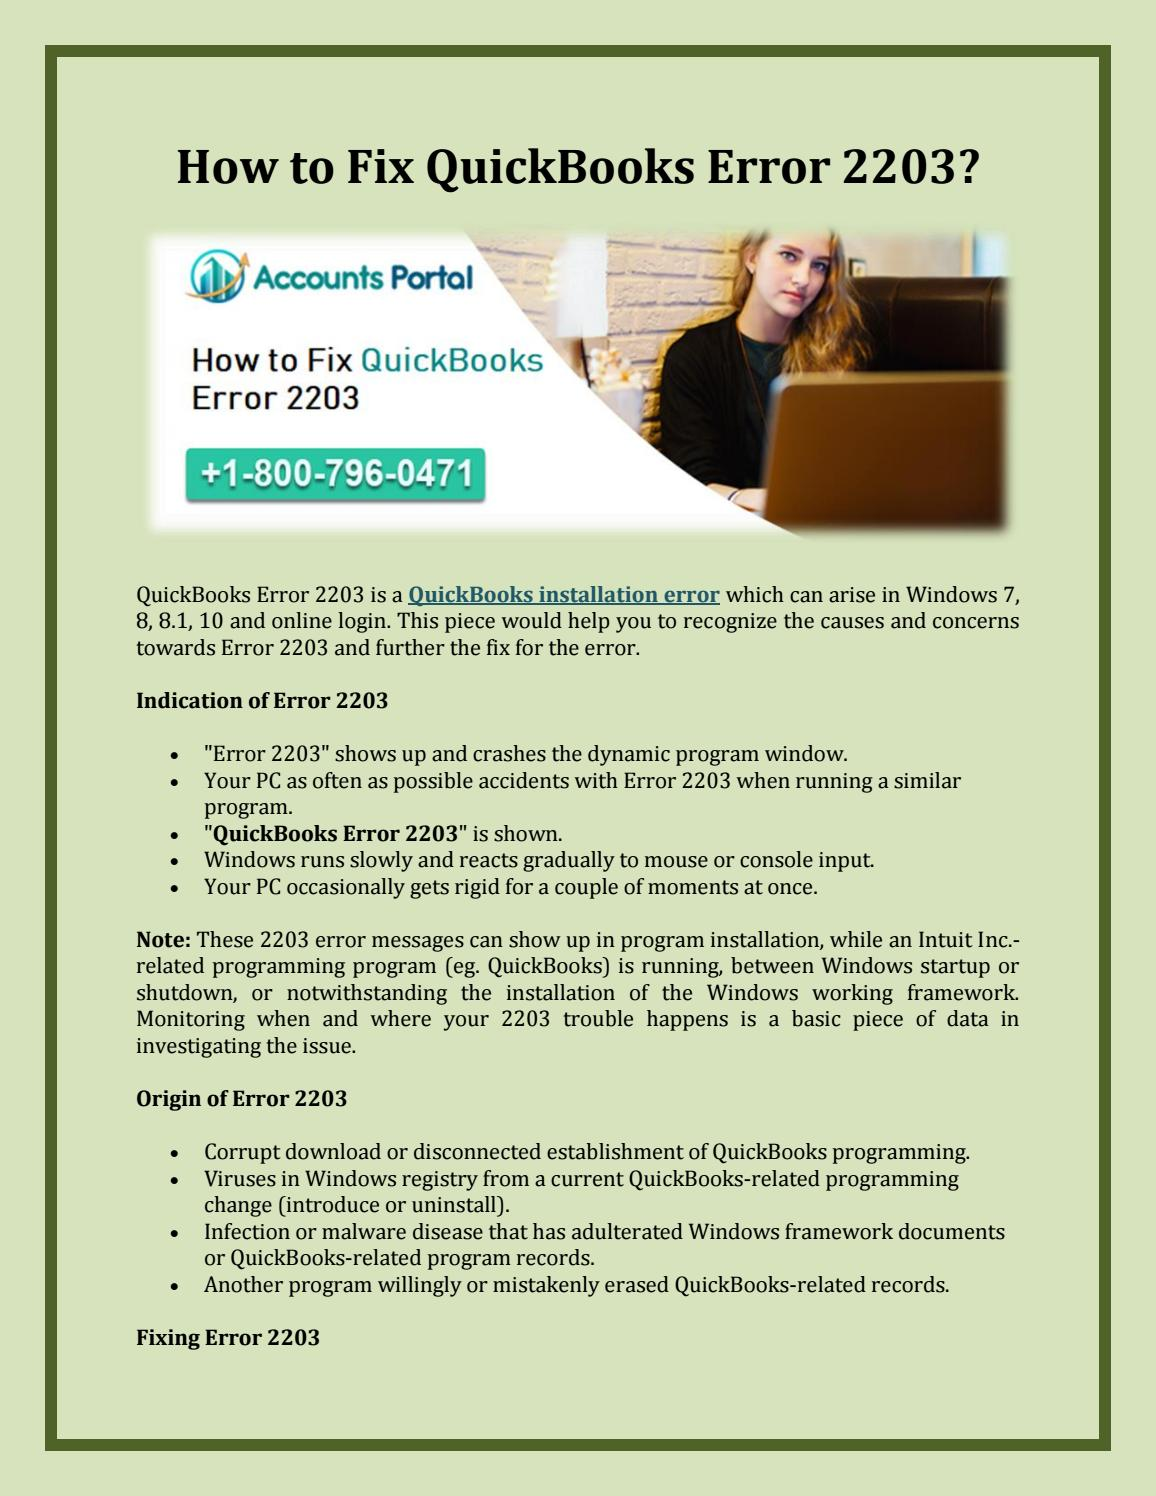 1-800-796-0471 How to Fix QuickBooks Error 2203? by